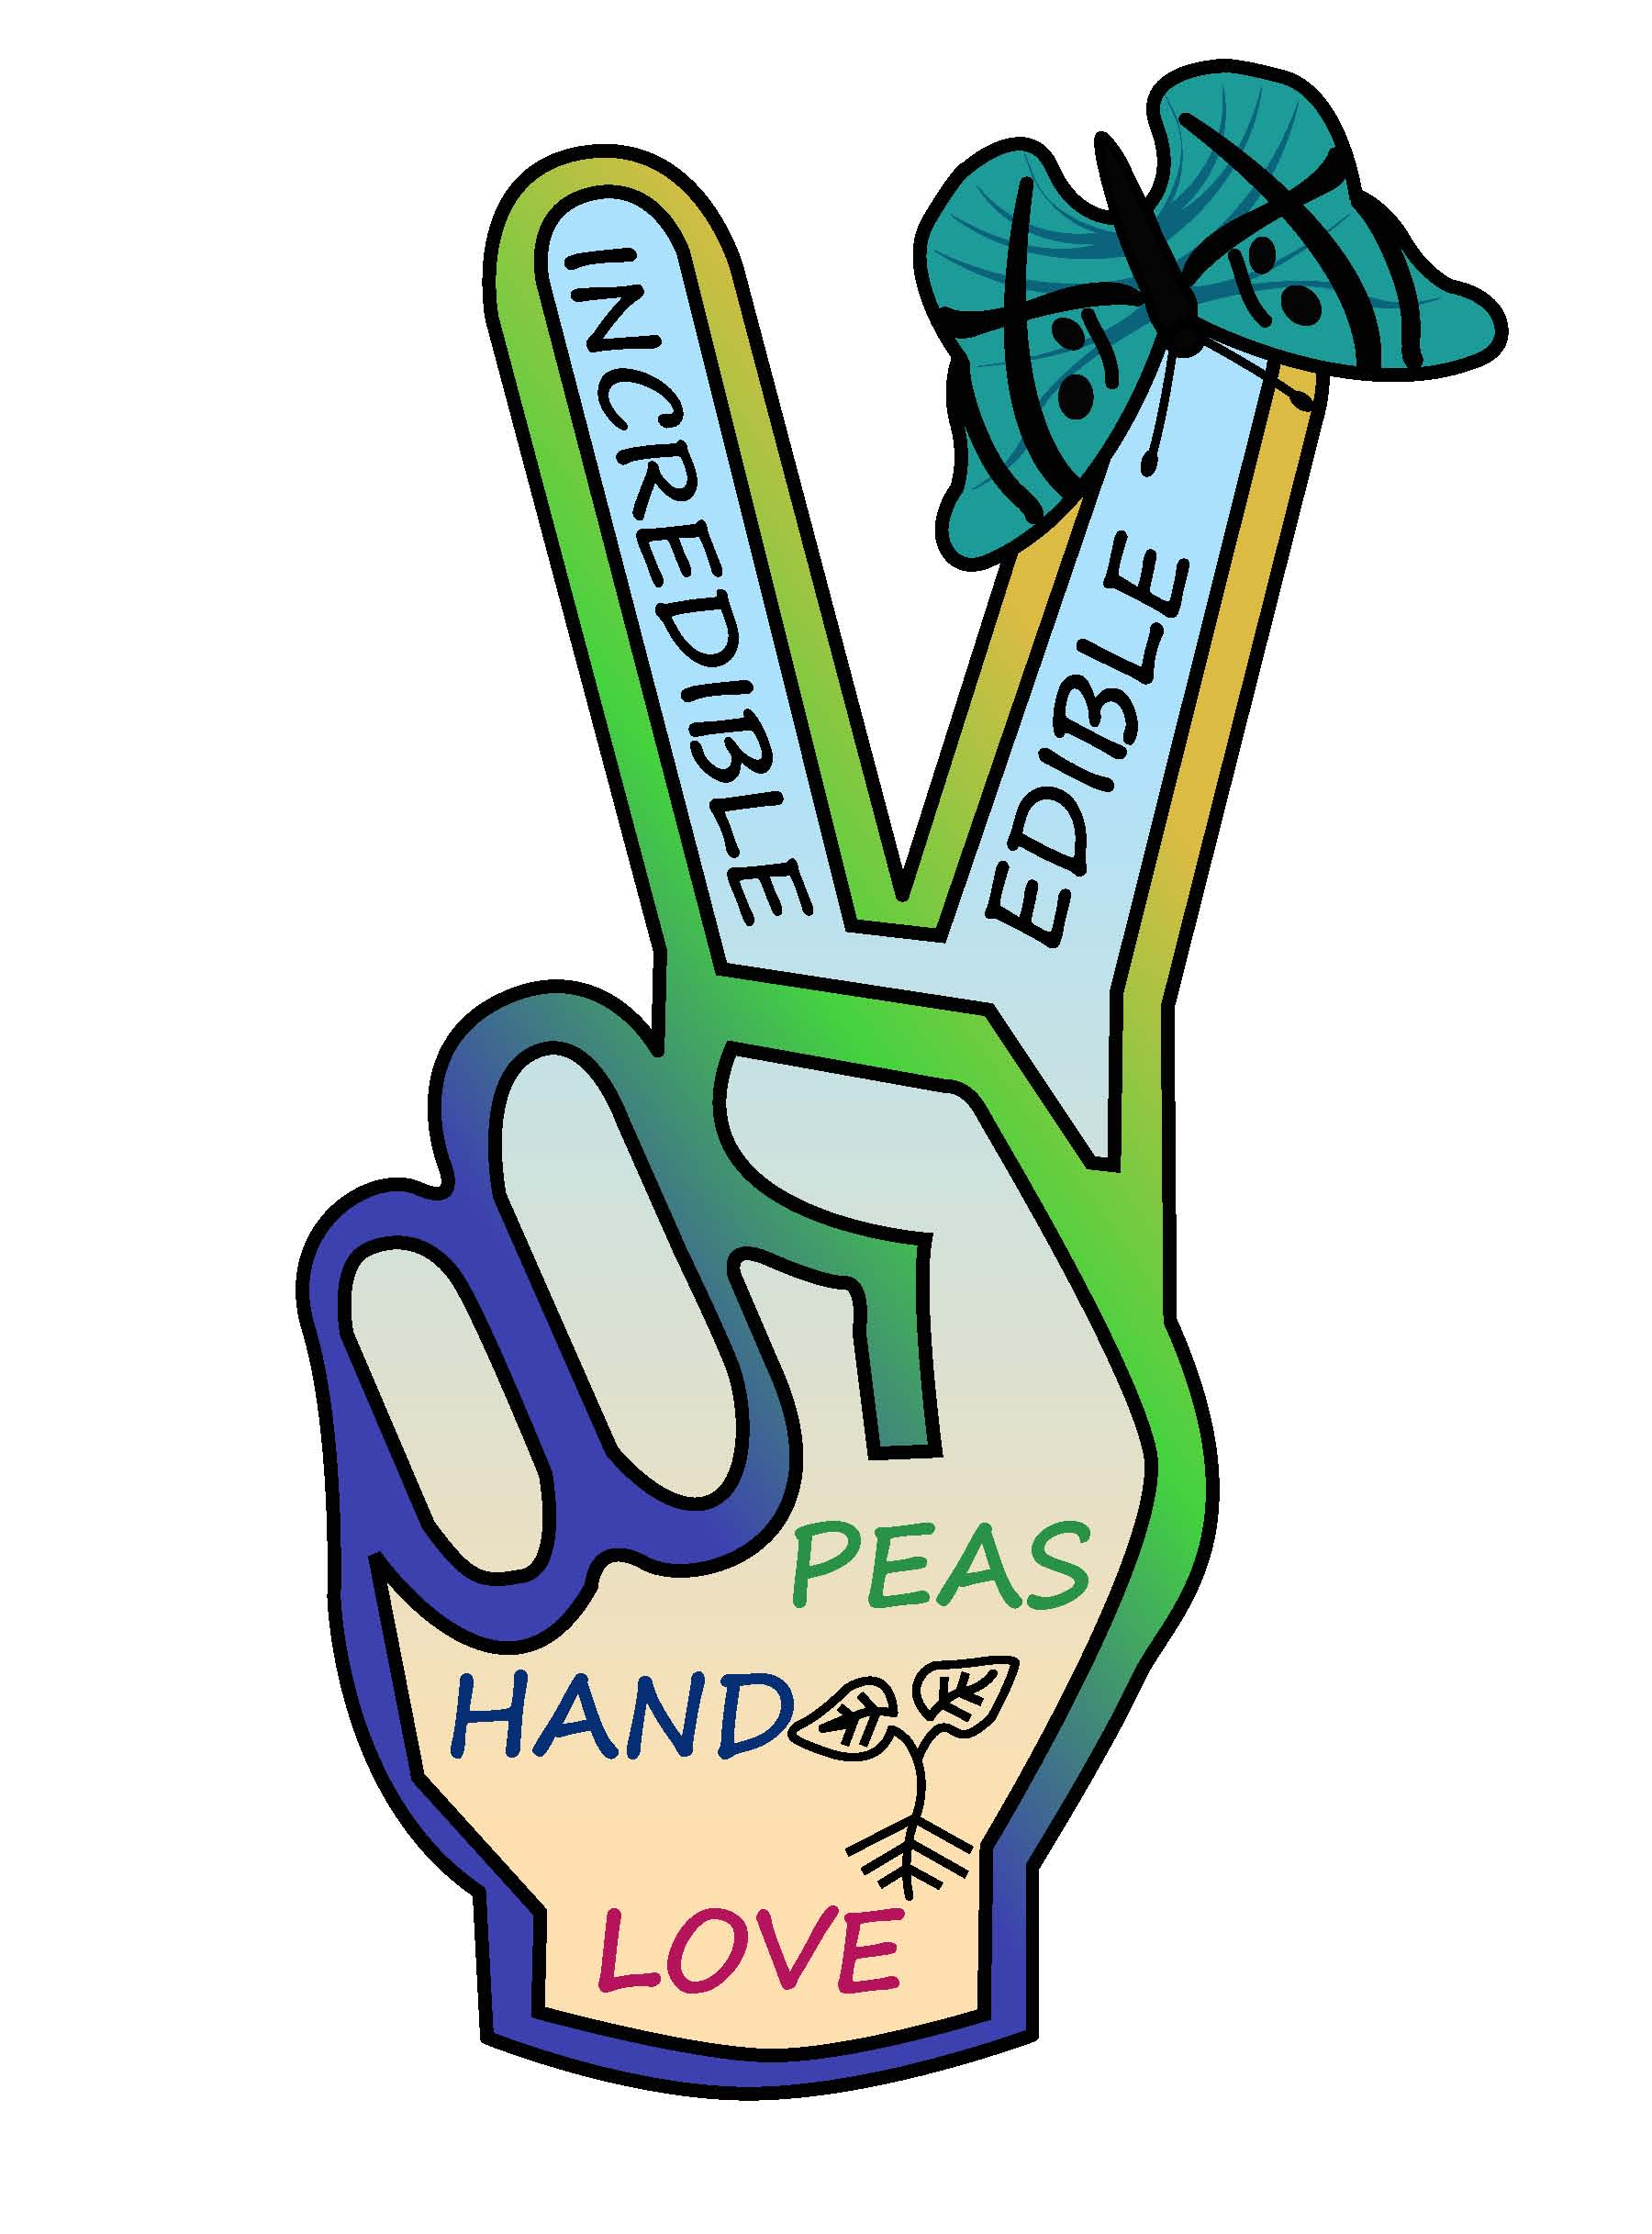 incredible_edible_todmorden_incroyables_comestibles_PEAS_HAND_LOVE_nourriture_a_partager_w1800